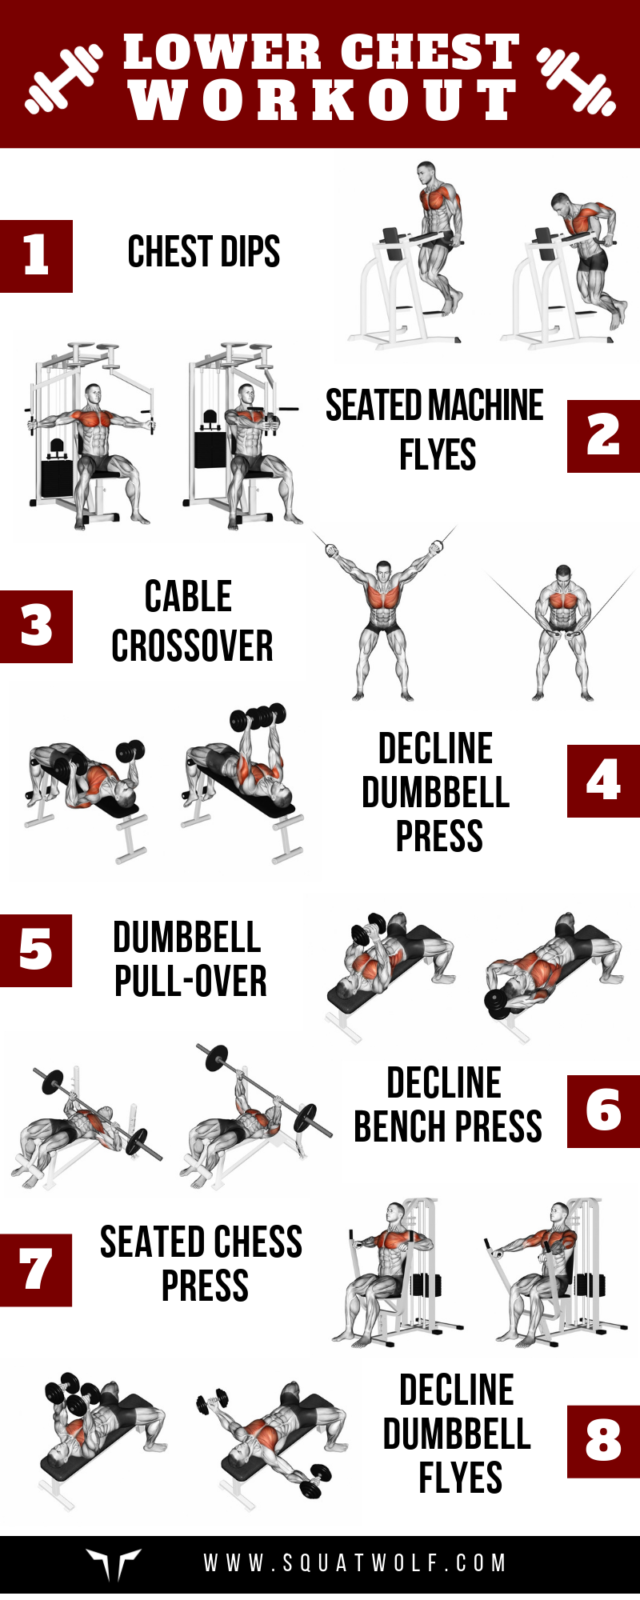 8 Lower Chest Workouts for Defined Pecs - SQUAT WOLF